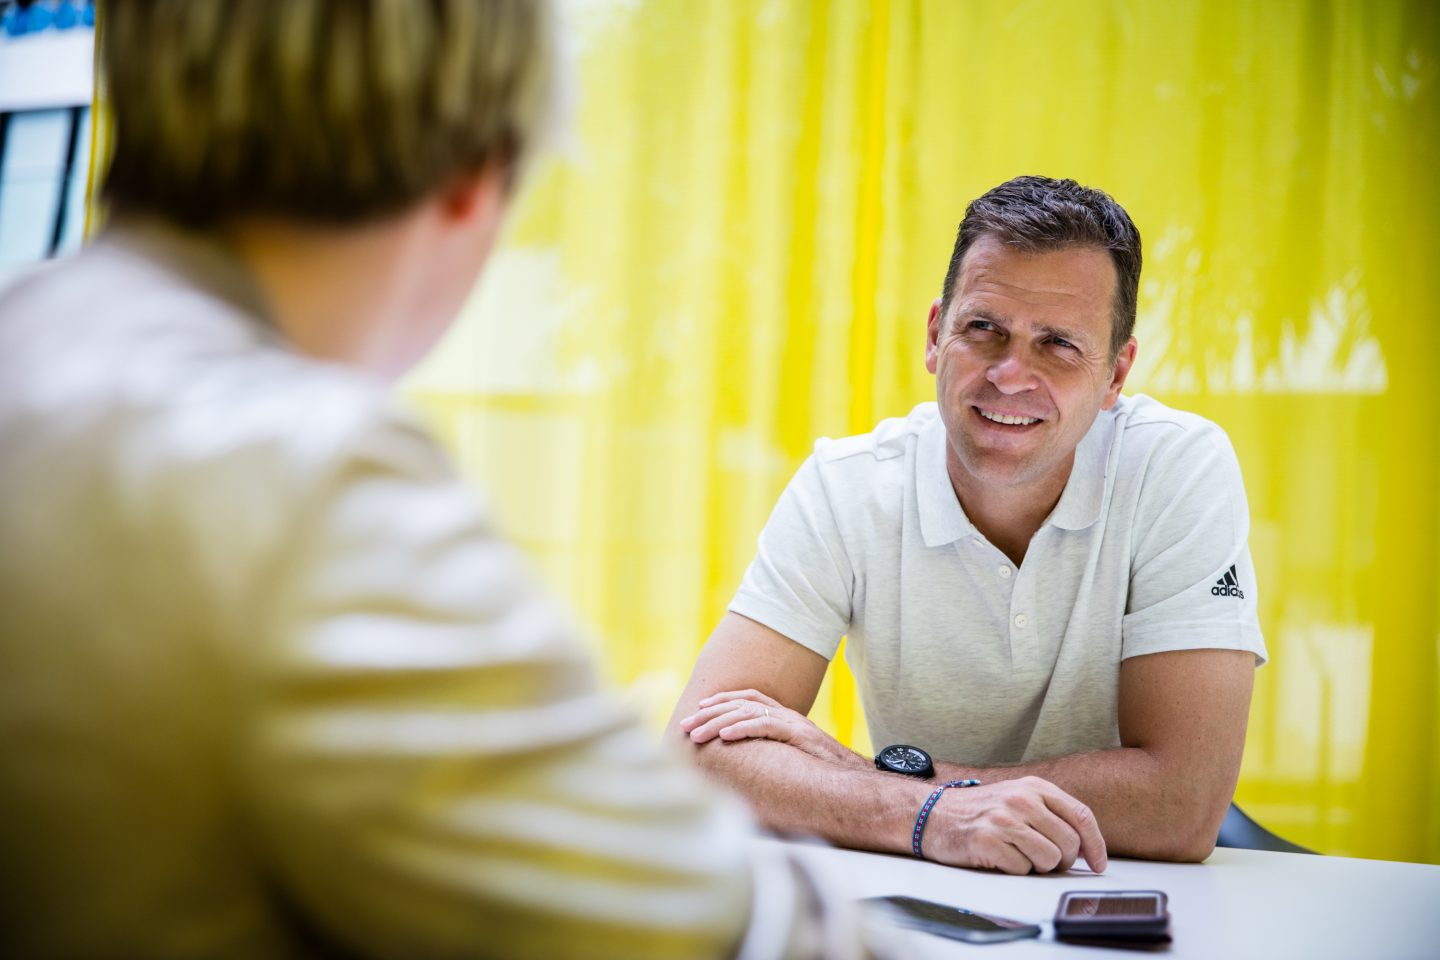 Oliver Bierhoff wearing a white poloshirt smiling at the interviewer in front of yellow background, Oliver Bierhoff_Interview_DFB_Manager_adidas_GamePlan A